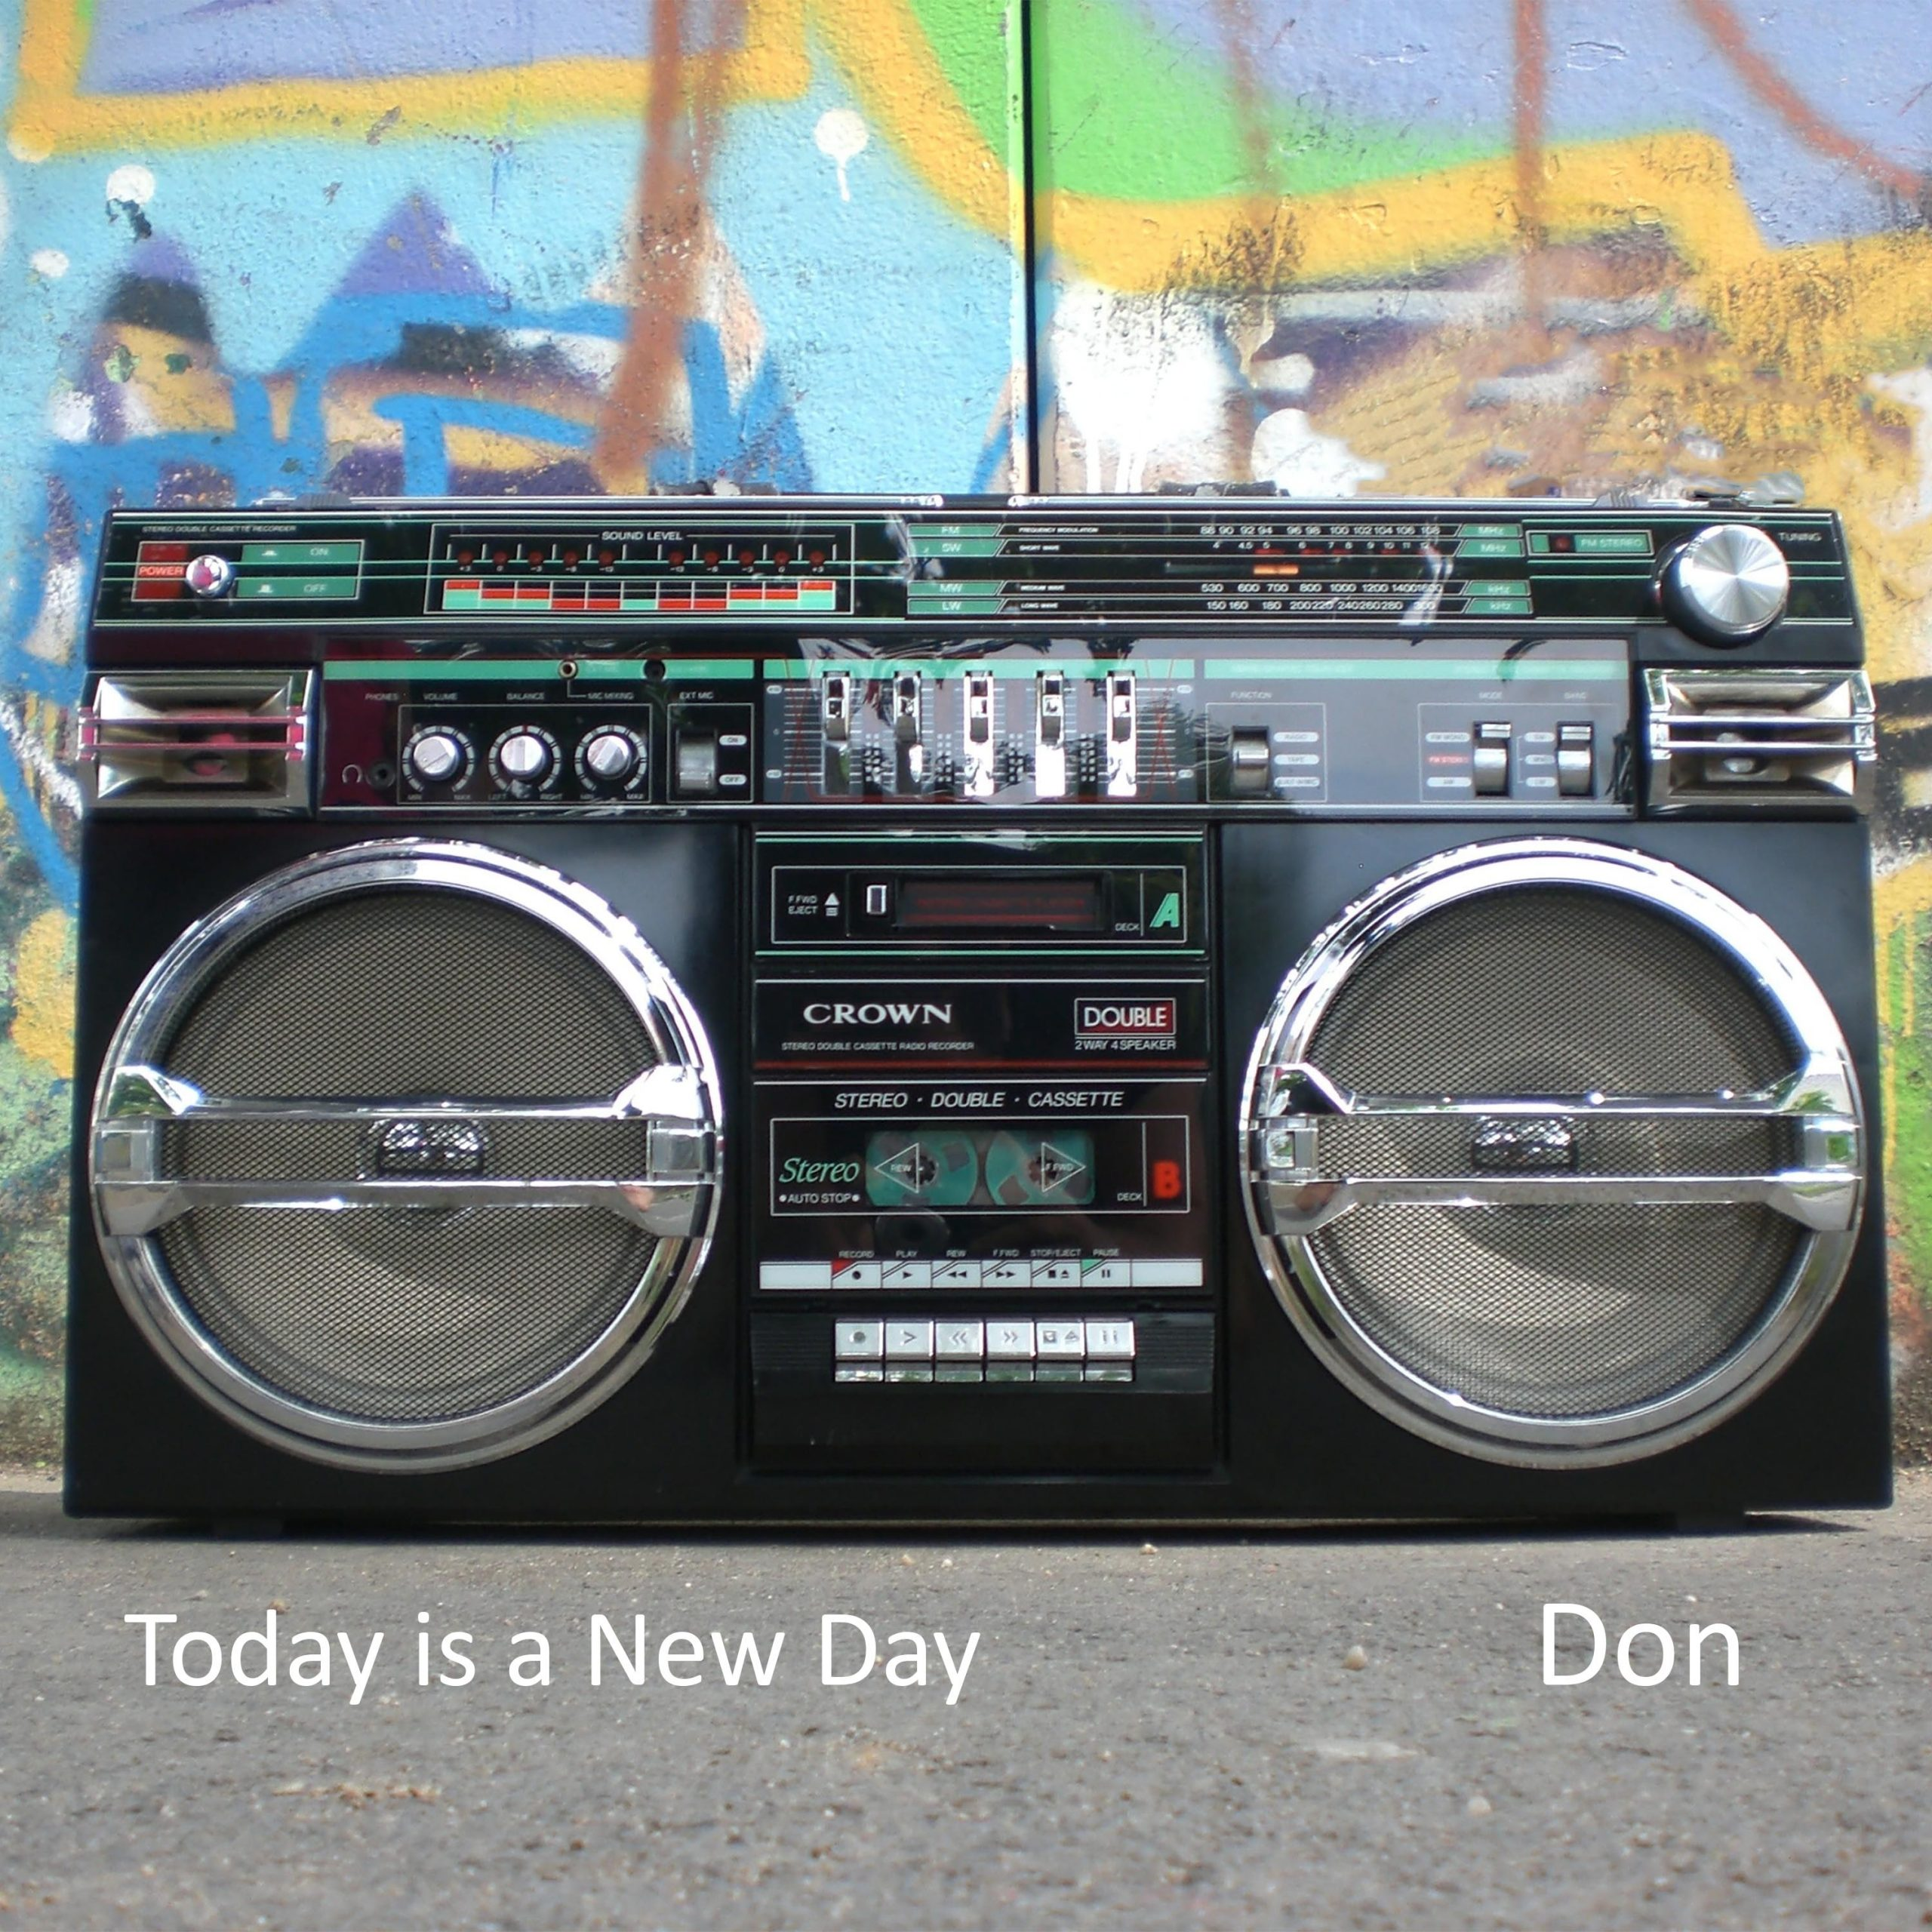 don-today-is-a-new-day-official